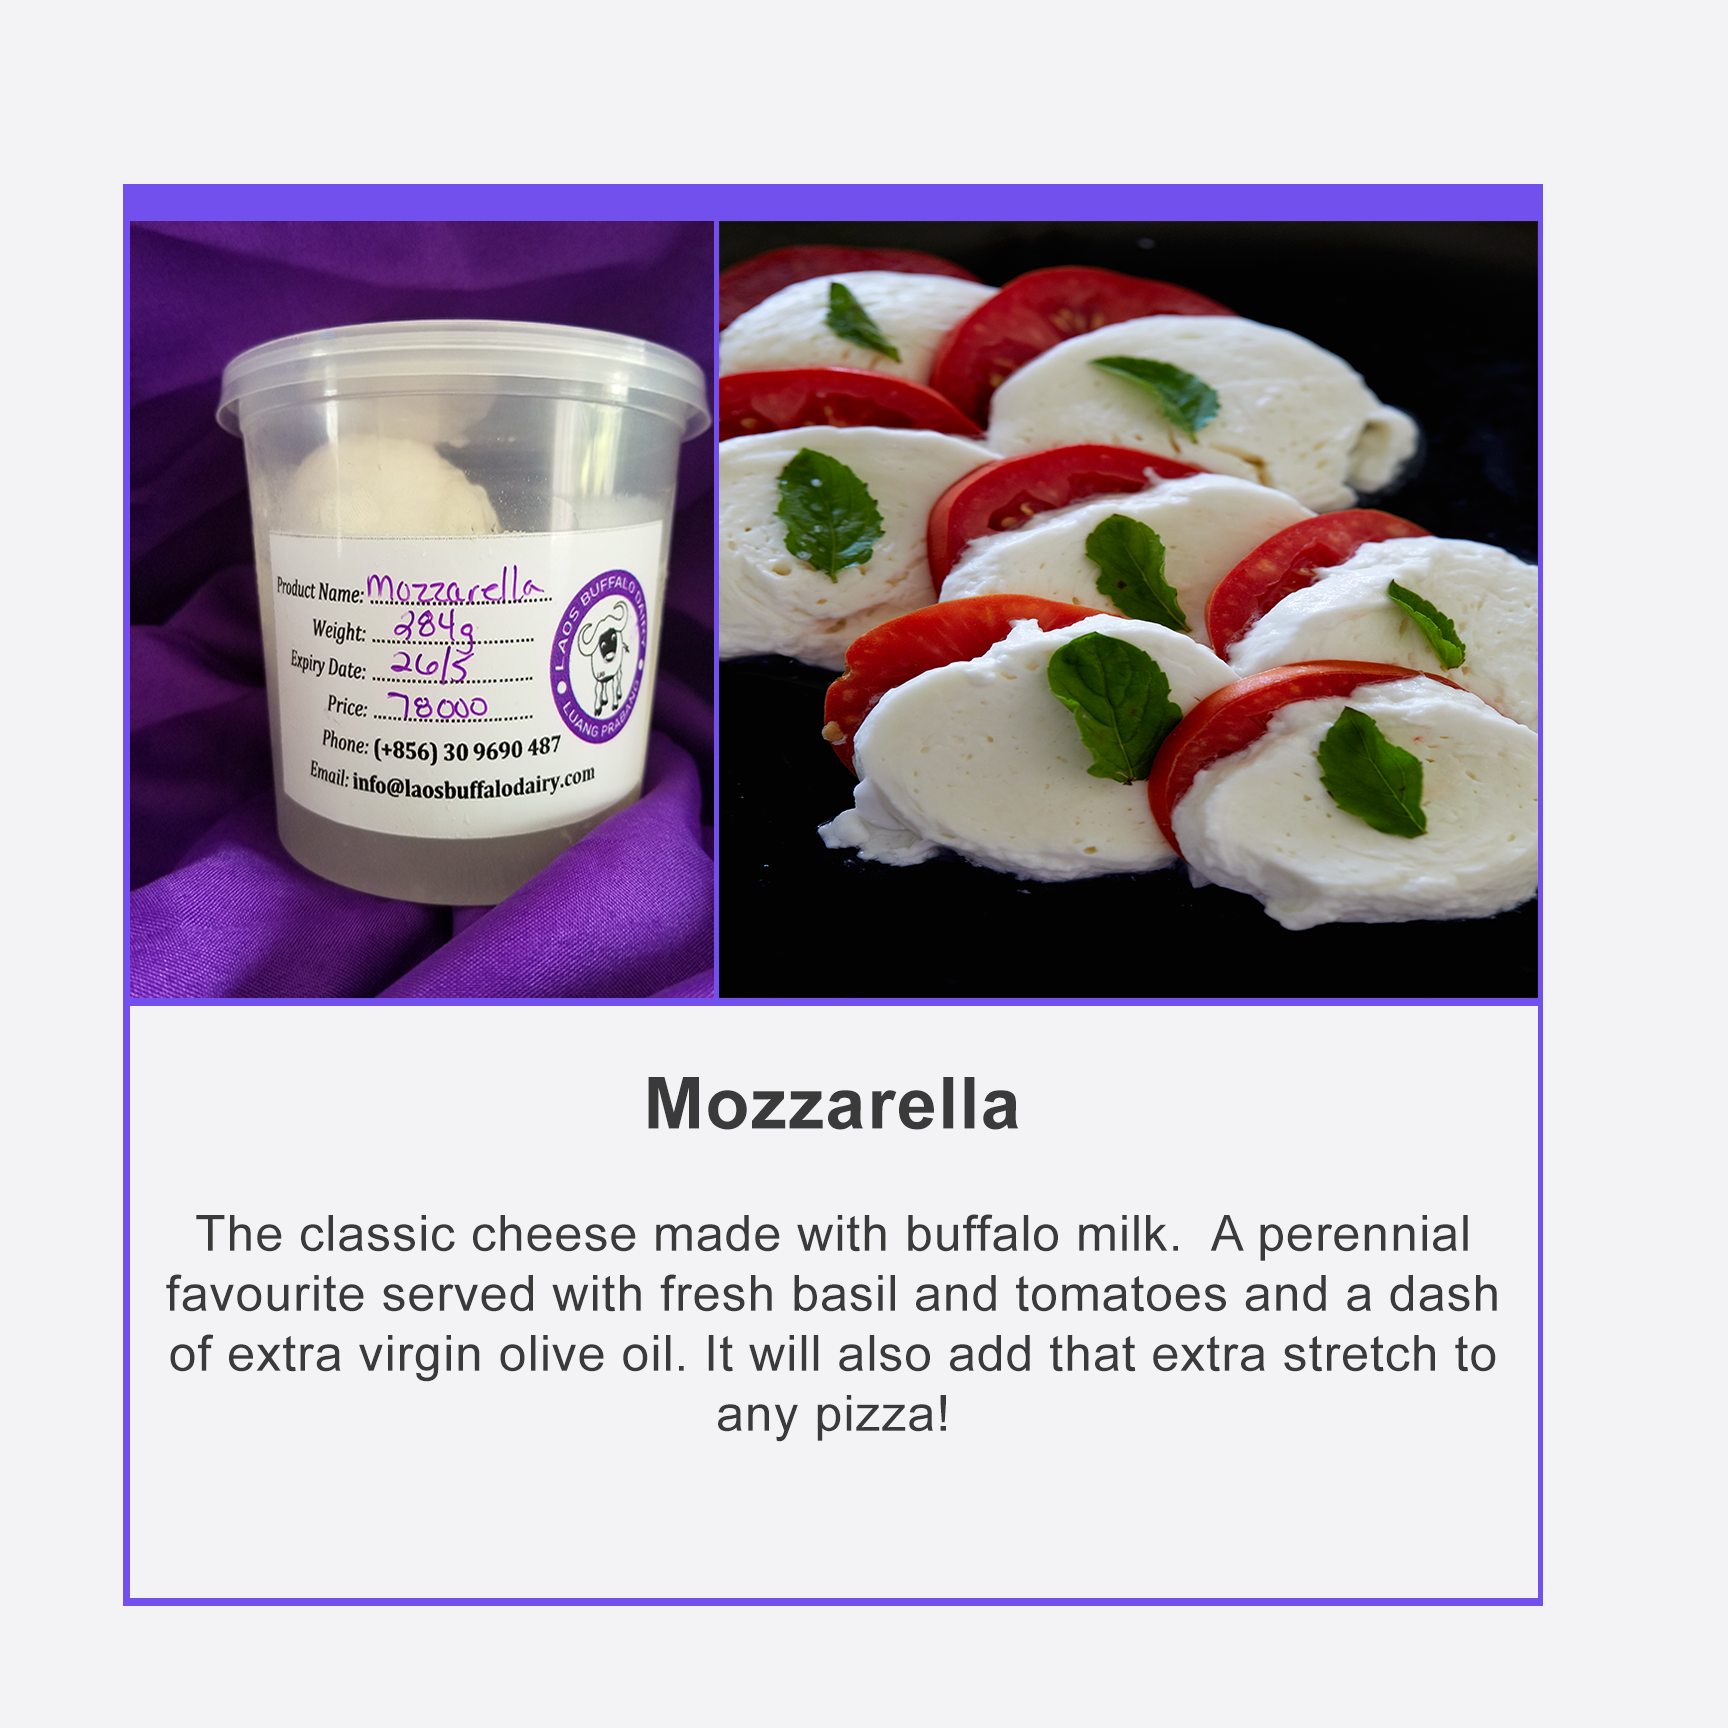 Each Mozzarella ball is hand made right here in Luang Prabang. Due to this, the weight of each individual ball varies slightly. The approximate weight is about 145g, and the cost per Kg is $33.00.